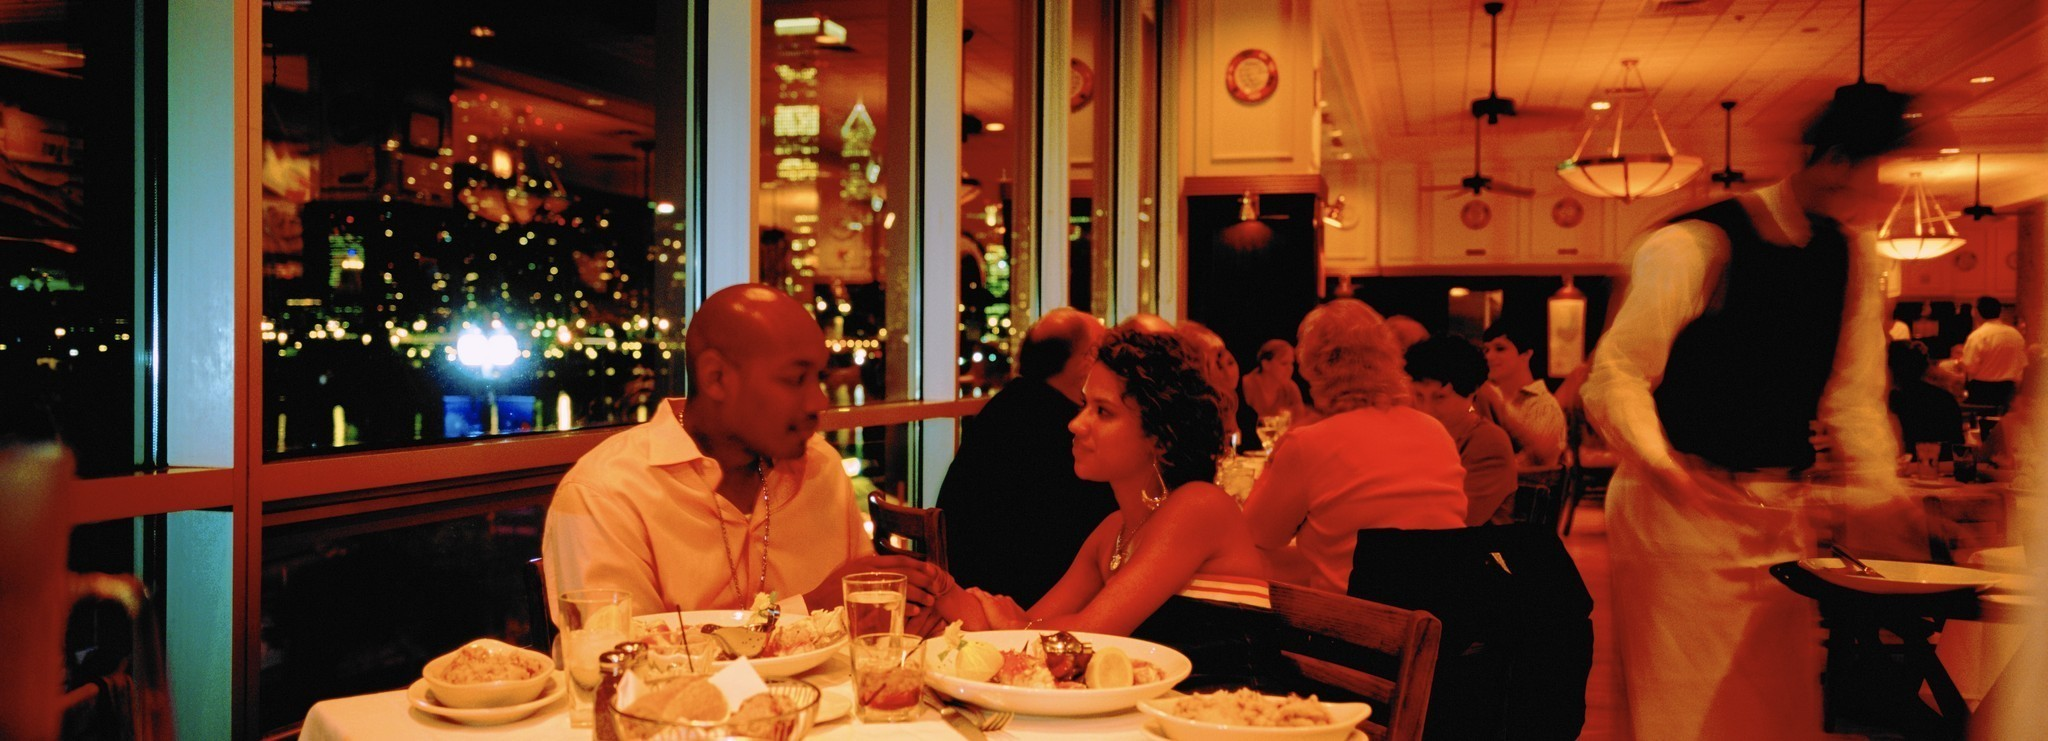 what is the dating scene like in minneapolis Northeast minneapolis is also a good choice but a bit more spread out similar to uptown with the art and music but it has been known as an area for young families nightlife is what you make it.